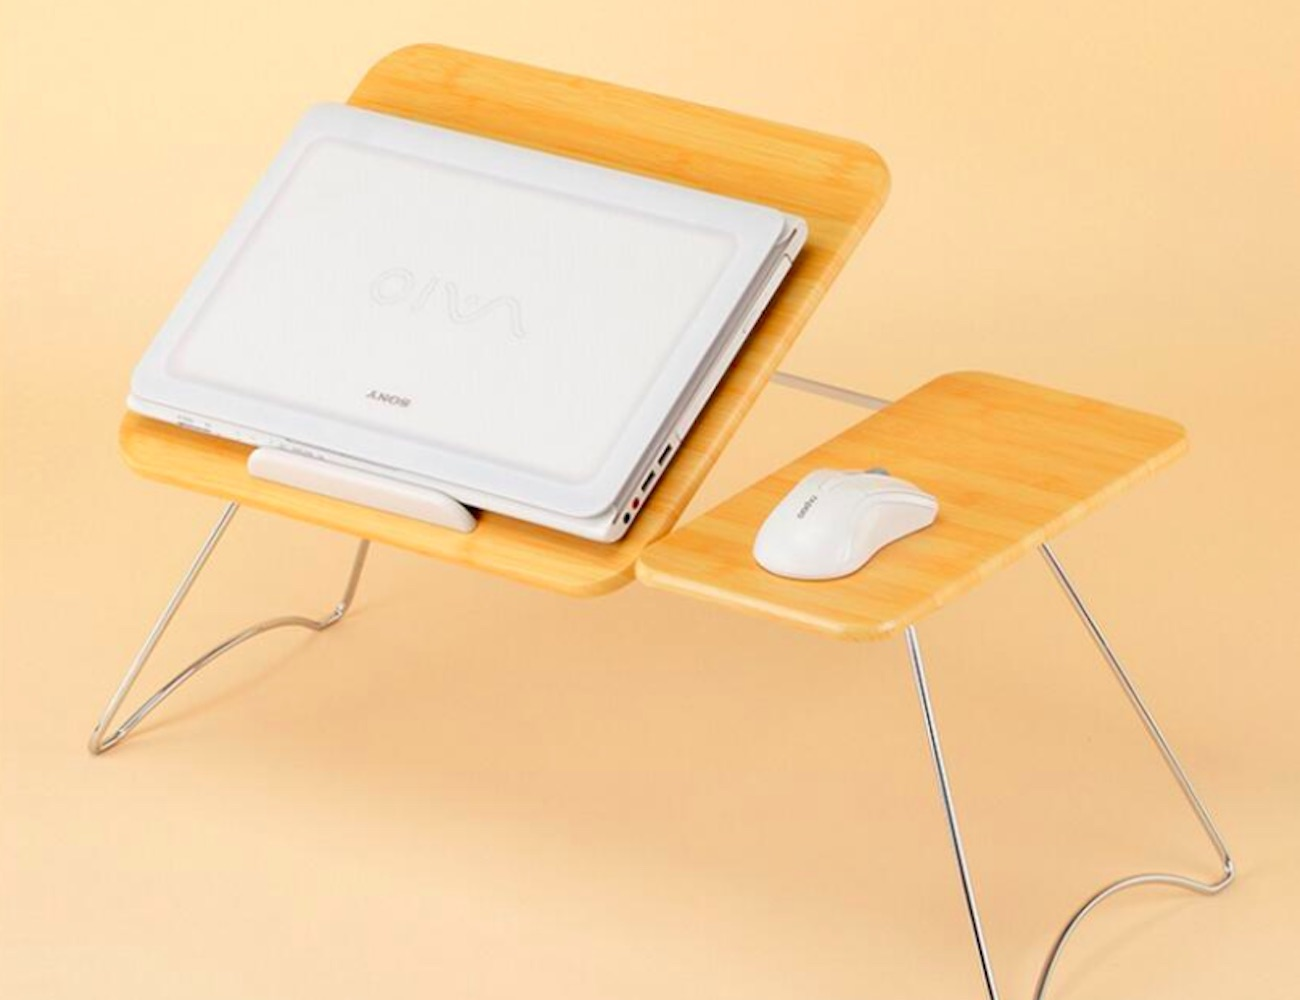 Portable Foldable Laptop Lap Desk puts your office at your fingertips